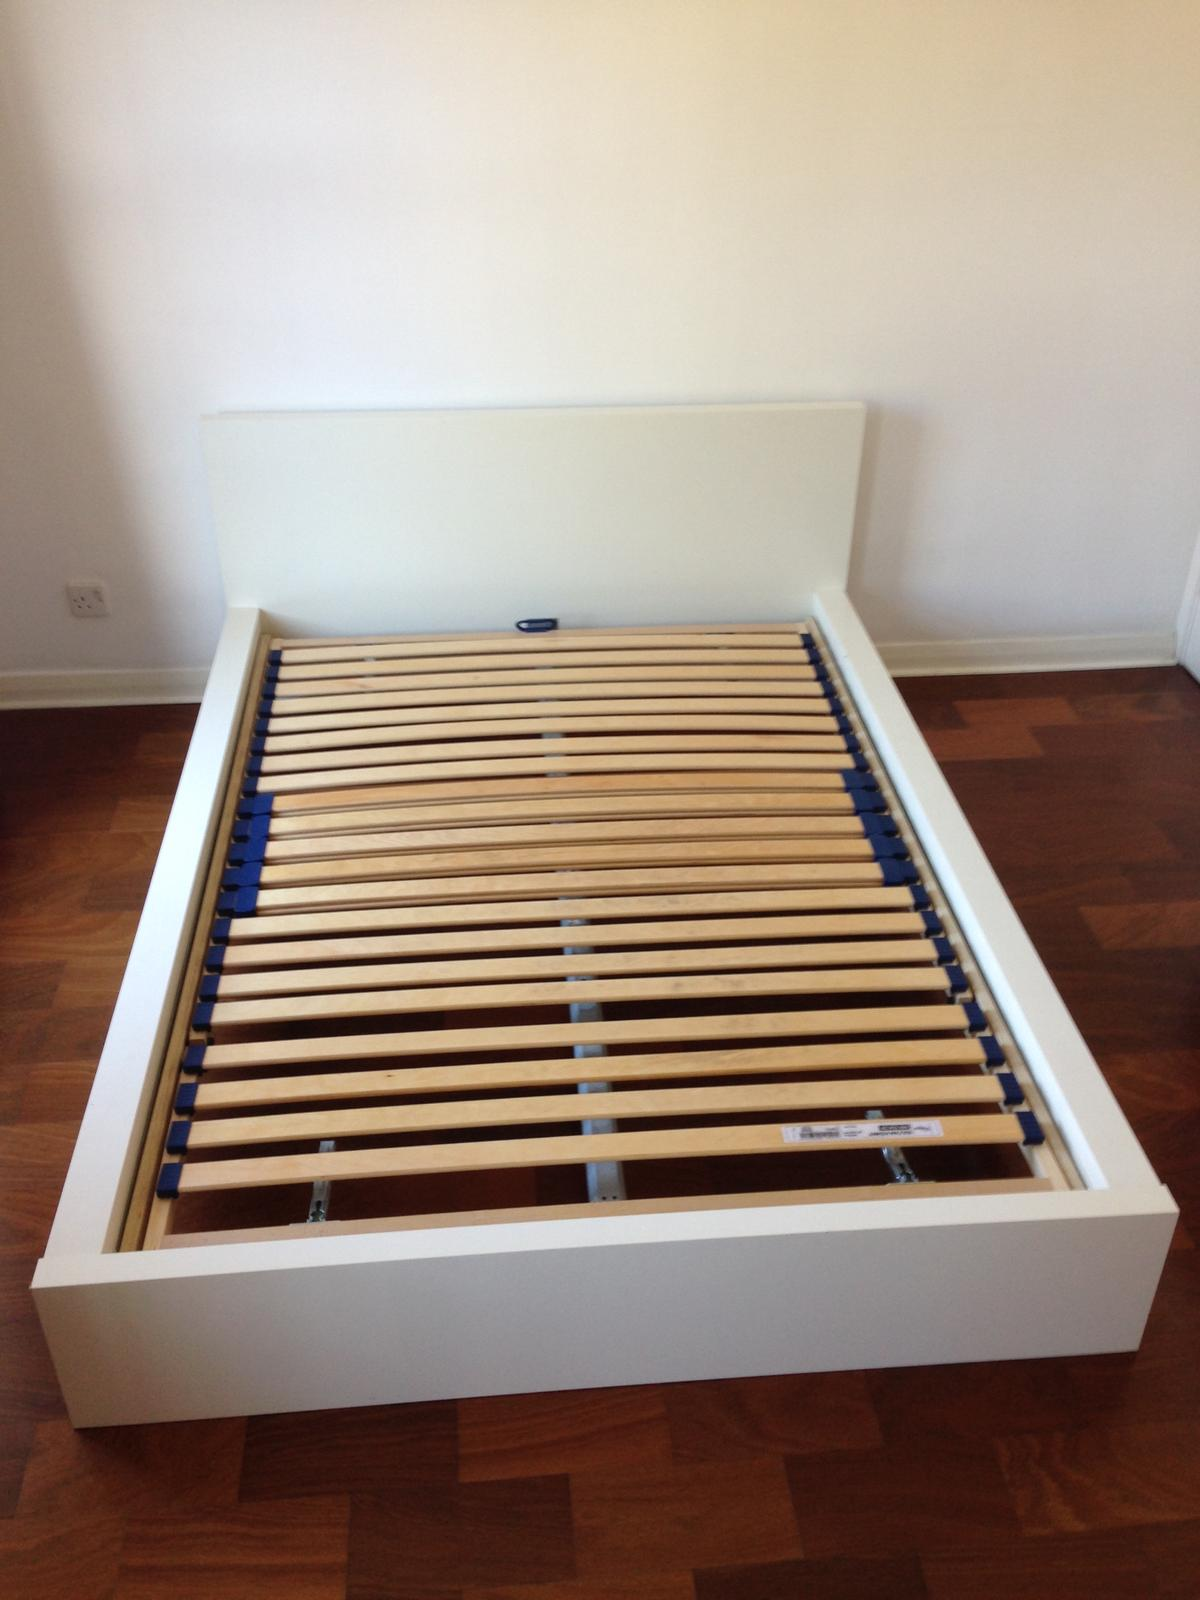 Complete IKEA Malm bed (white) in KT2 Thames for £110 00 for